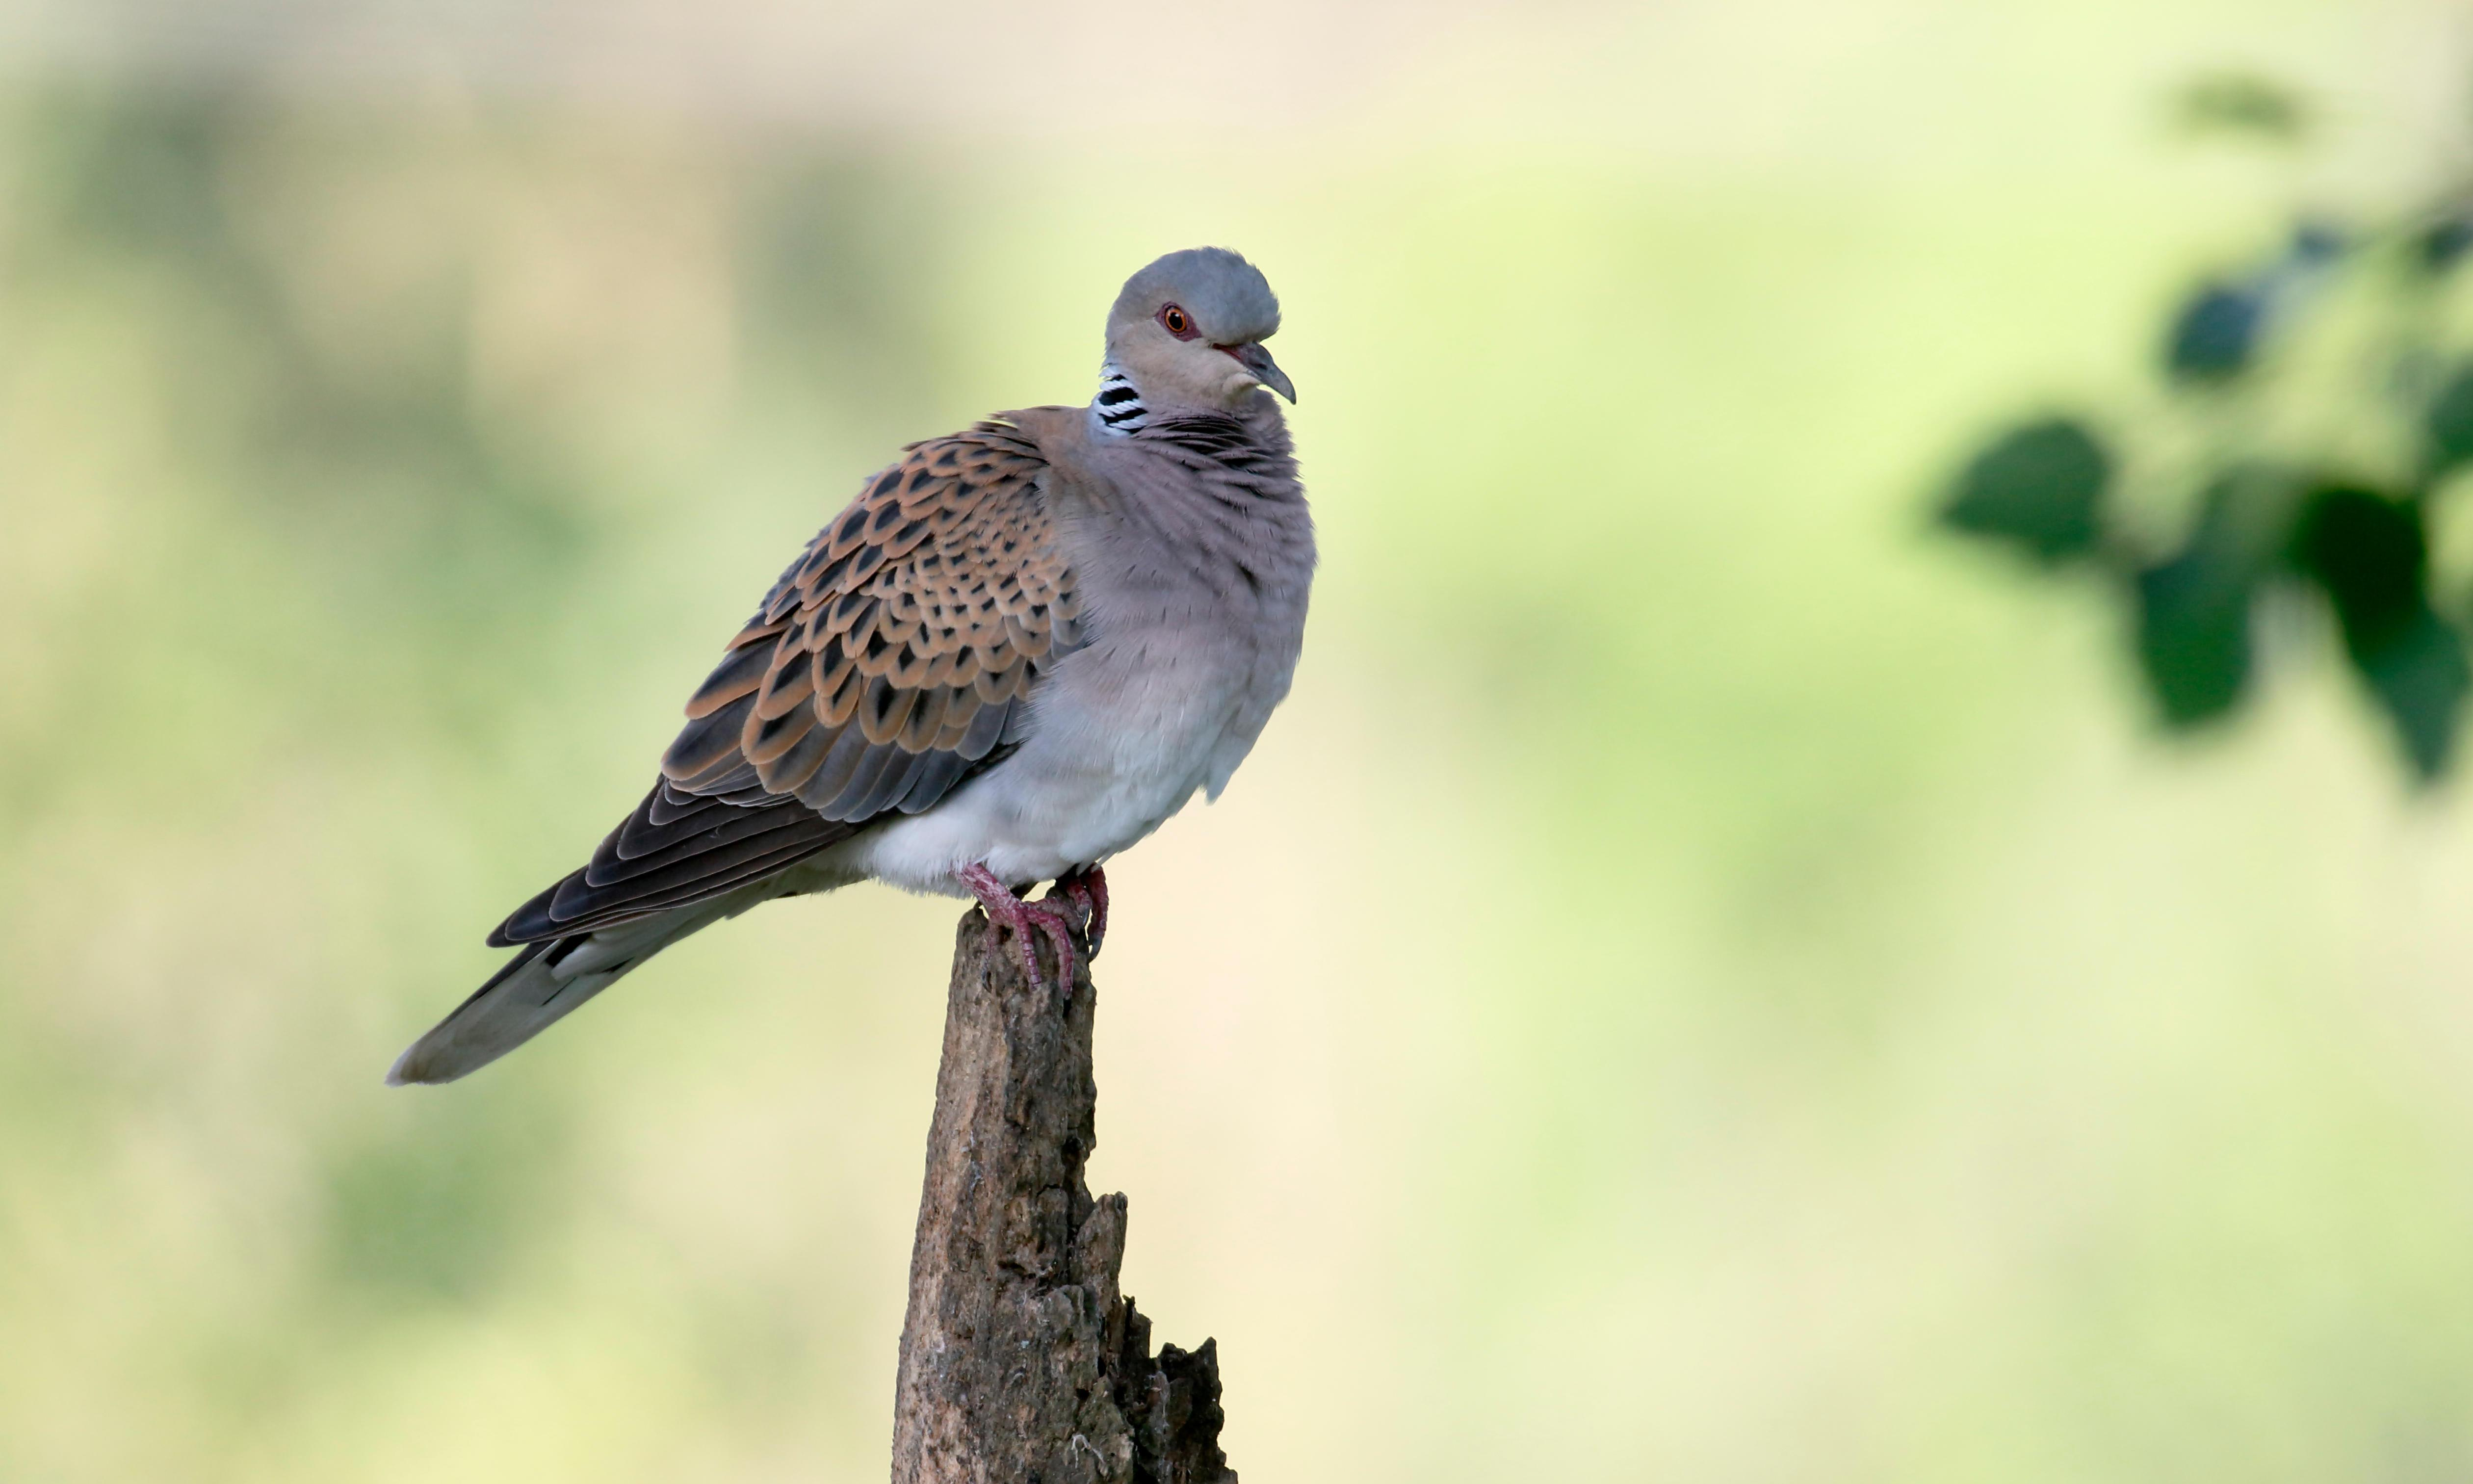 EU acts to protect future of bird facing extinction in UK